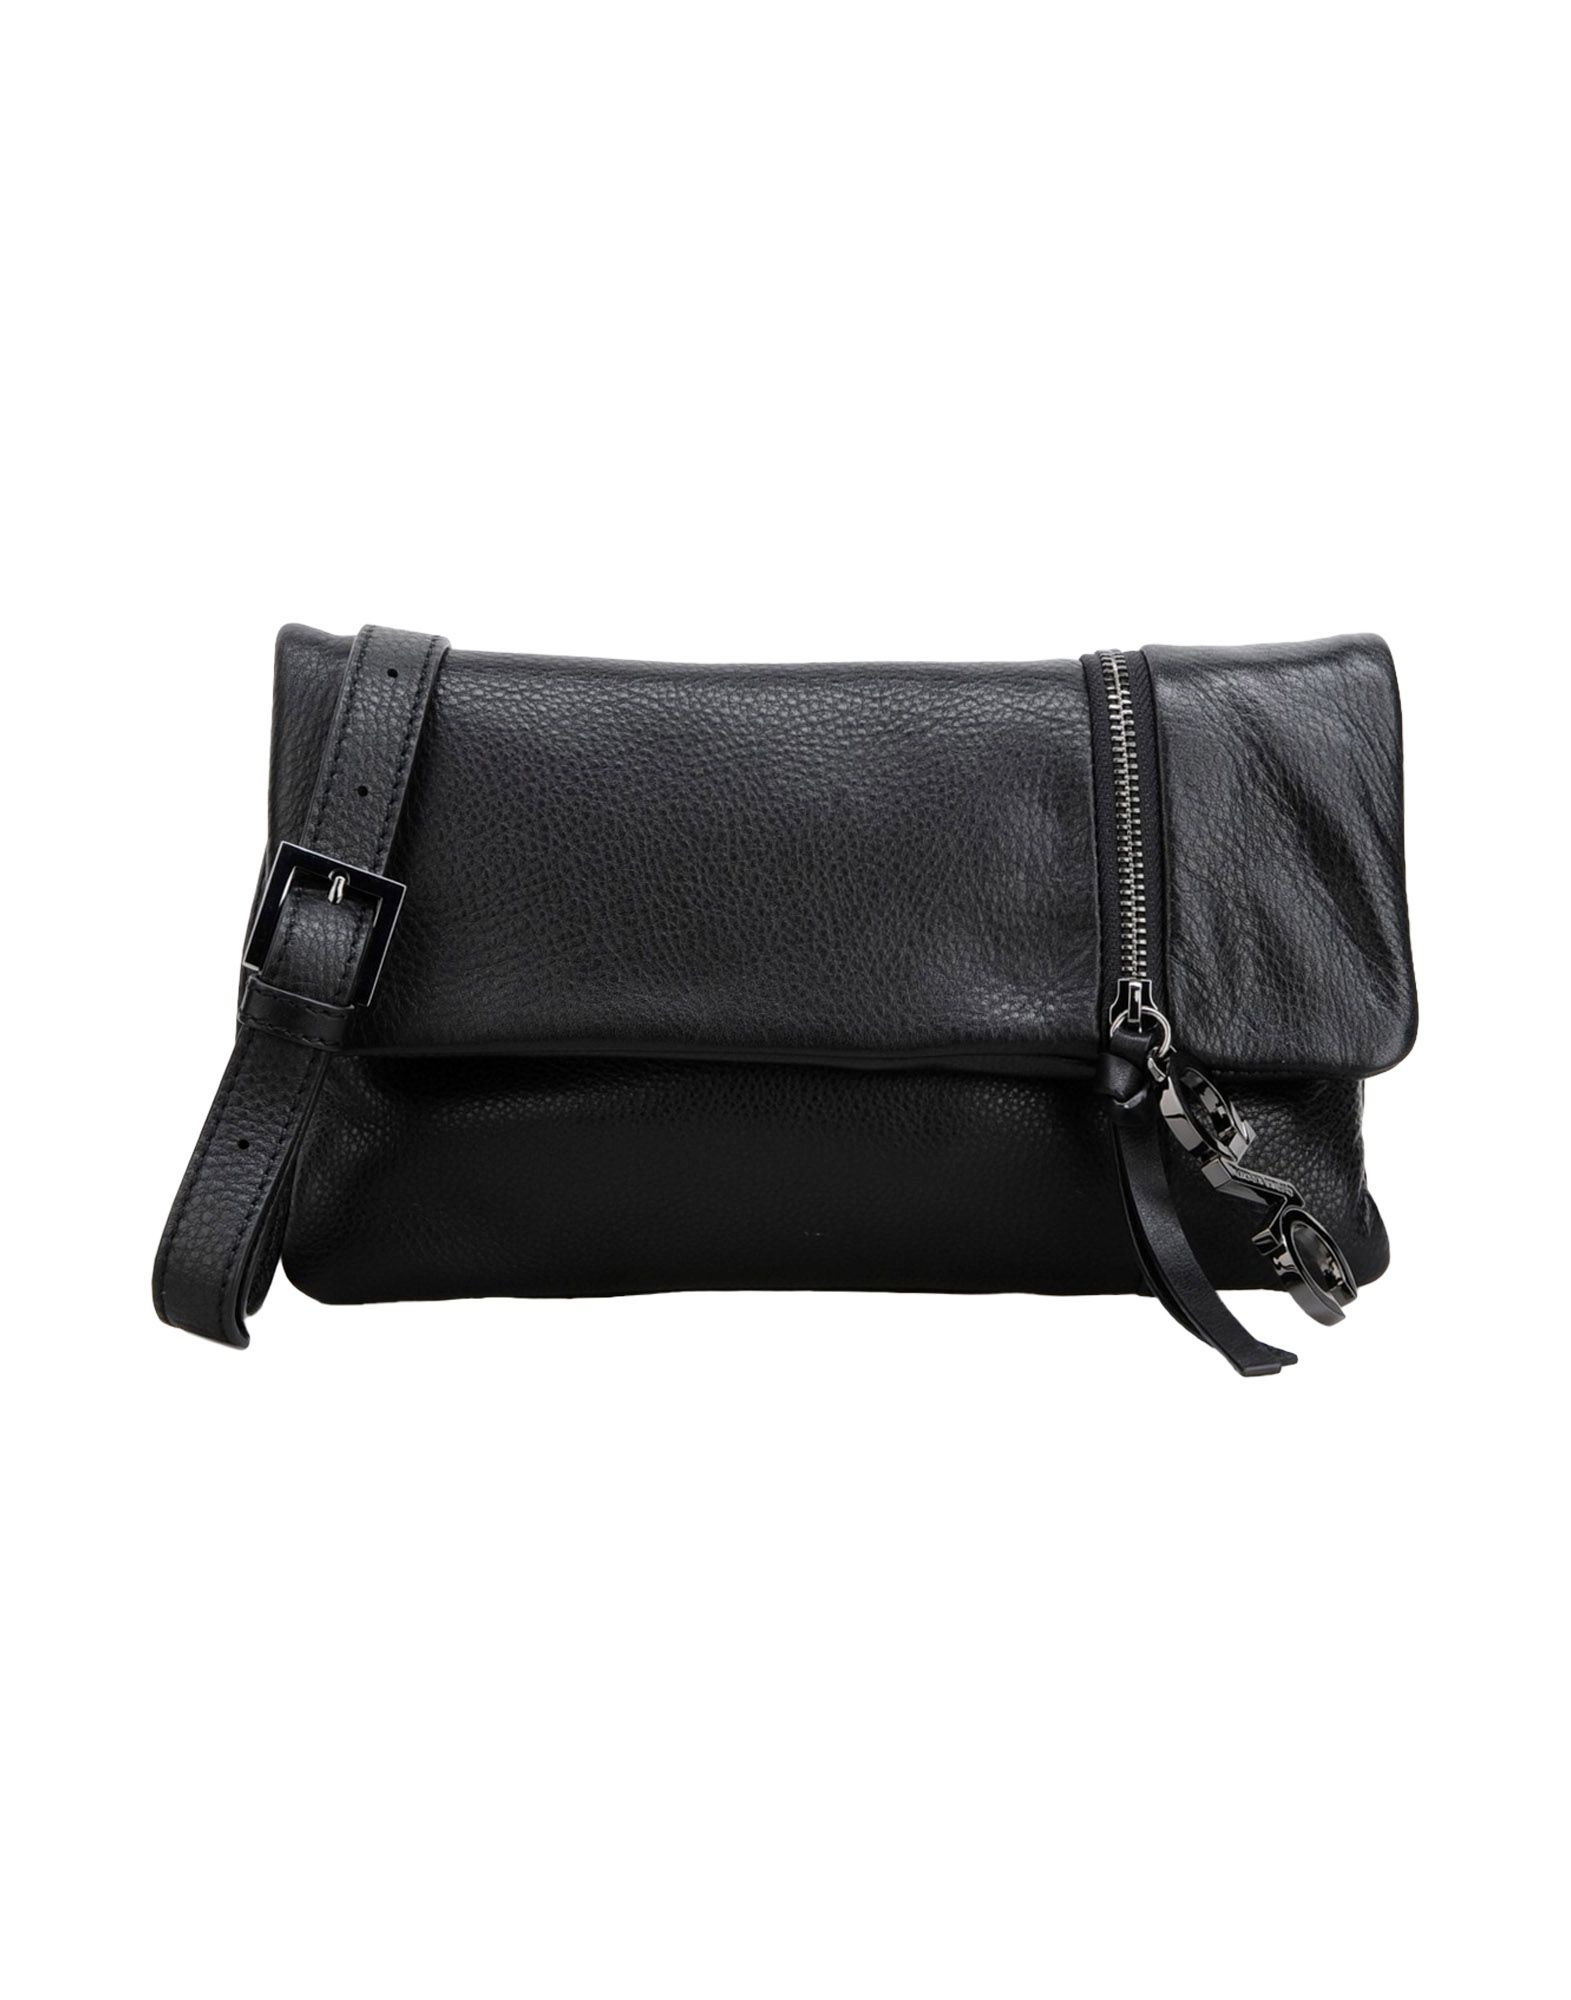 C'N'C' COSTUME NATIONAL Handbag